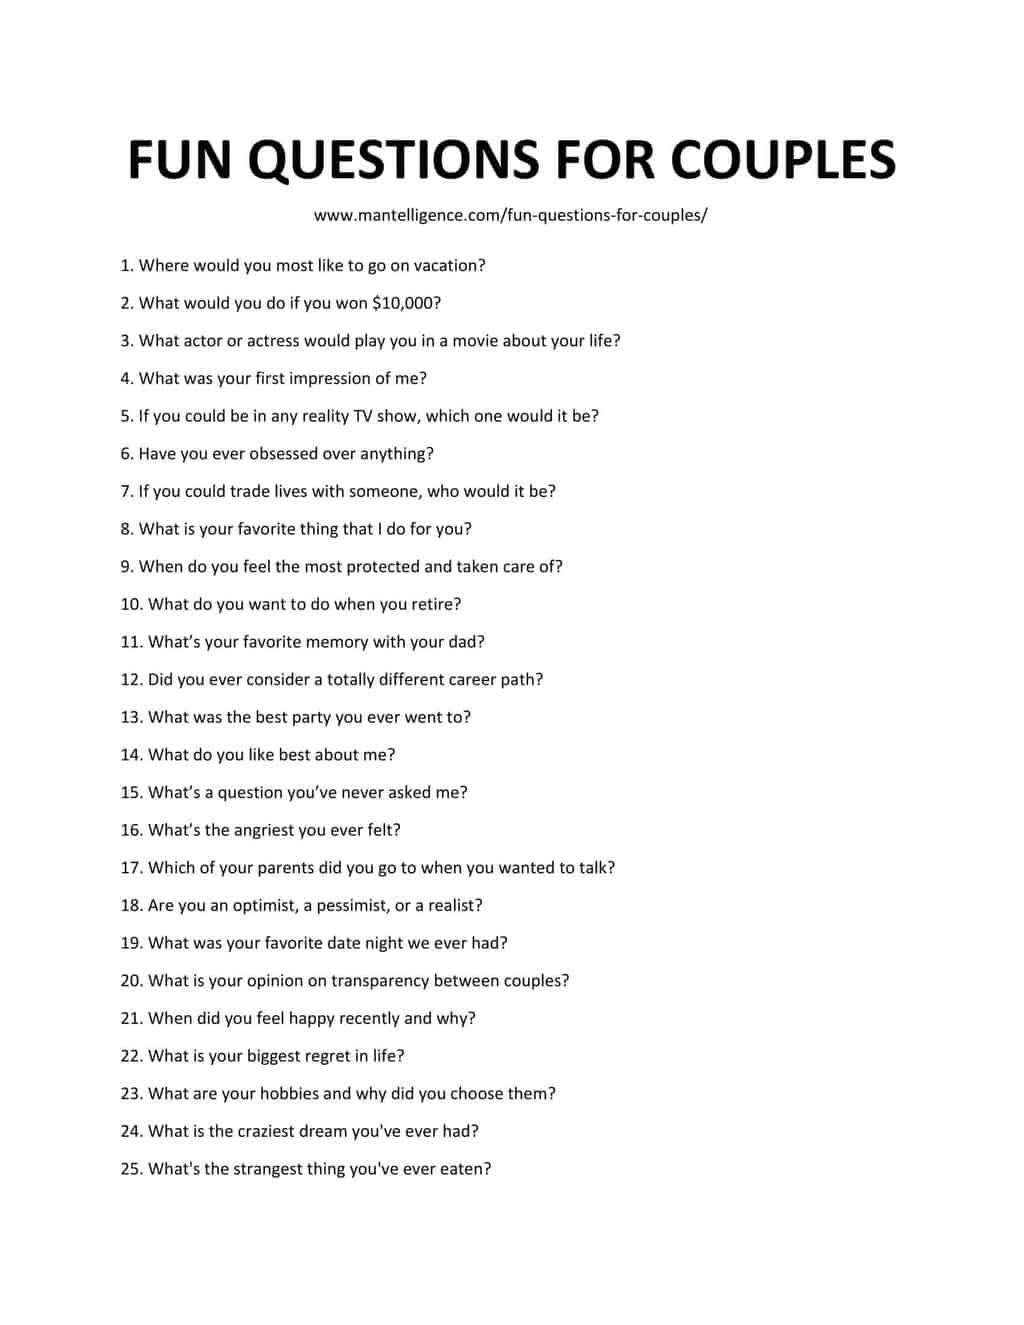 Downloadable List of Fun Questions for Couples